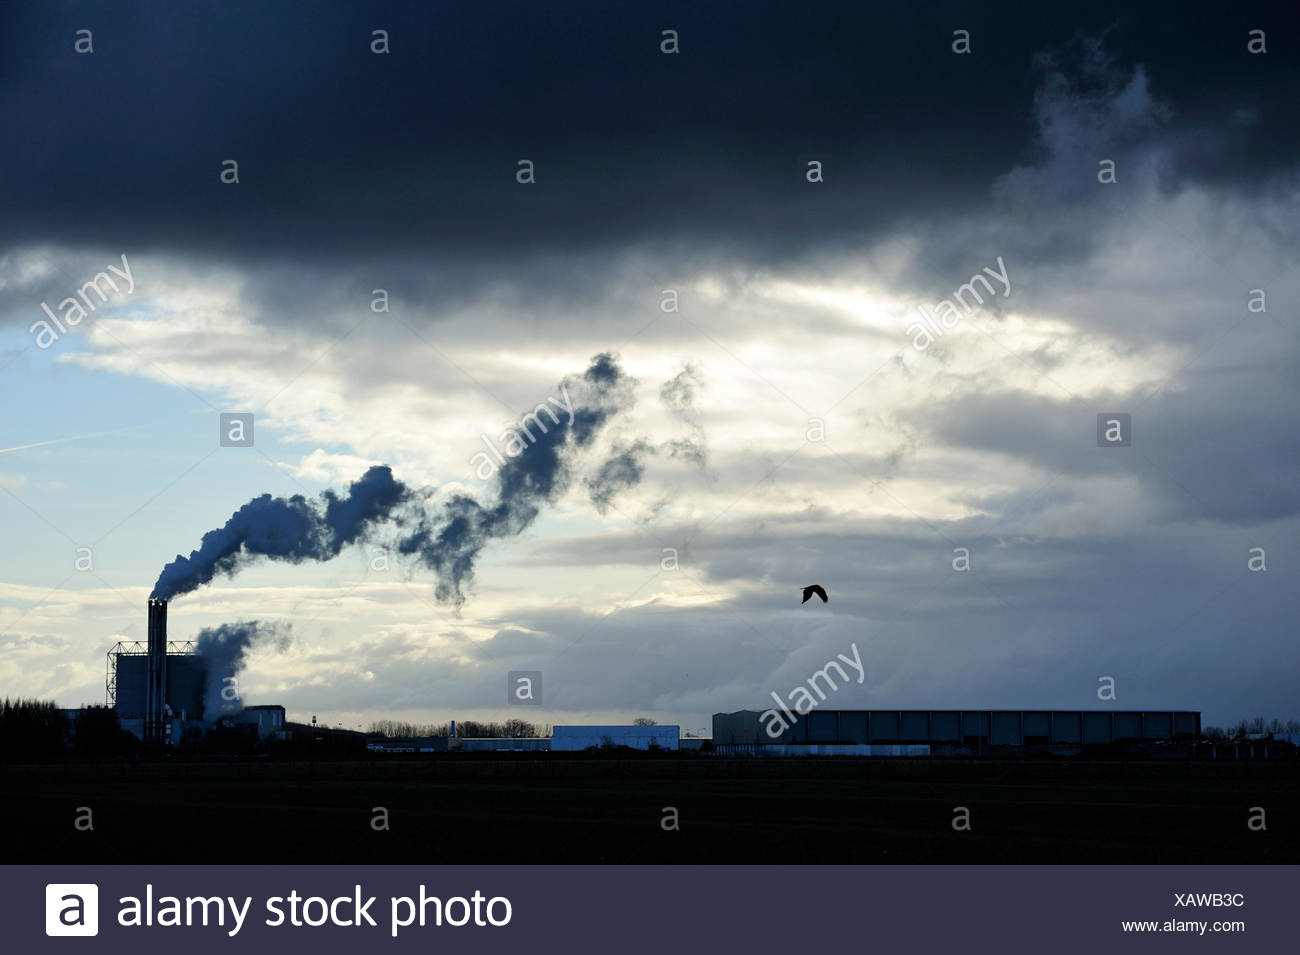 Smoking chimney against the light with a raincloud - Stock Image